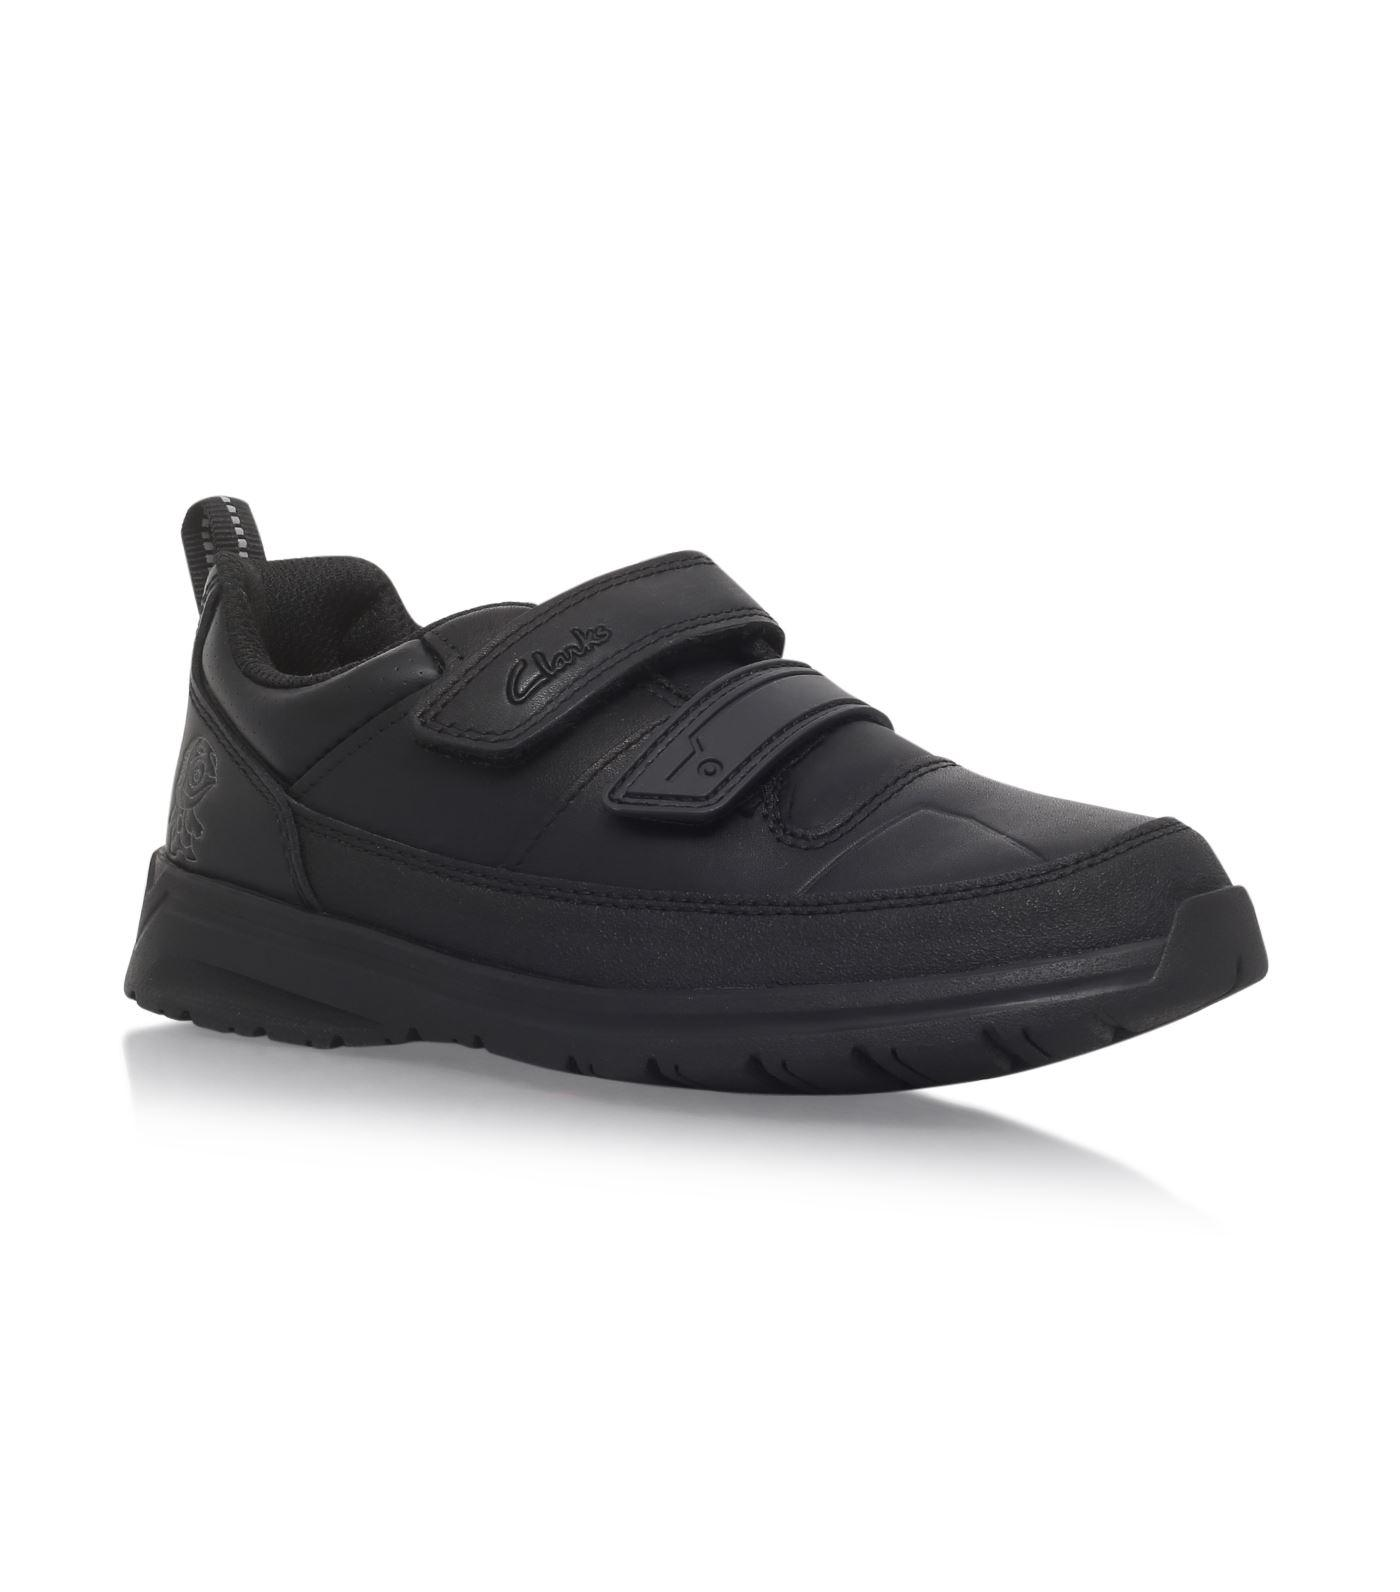 Clarks Reflect Ace Sneakers In Black